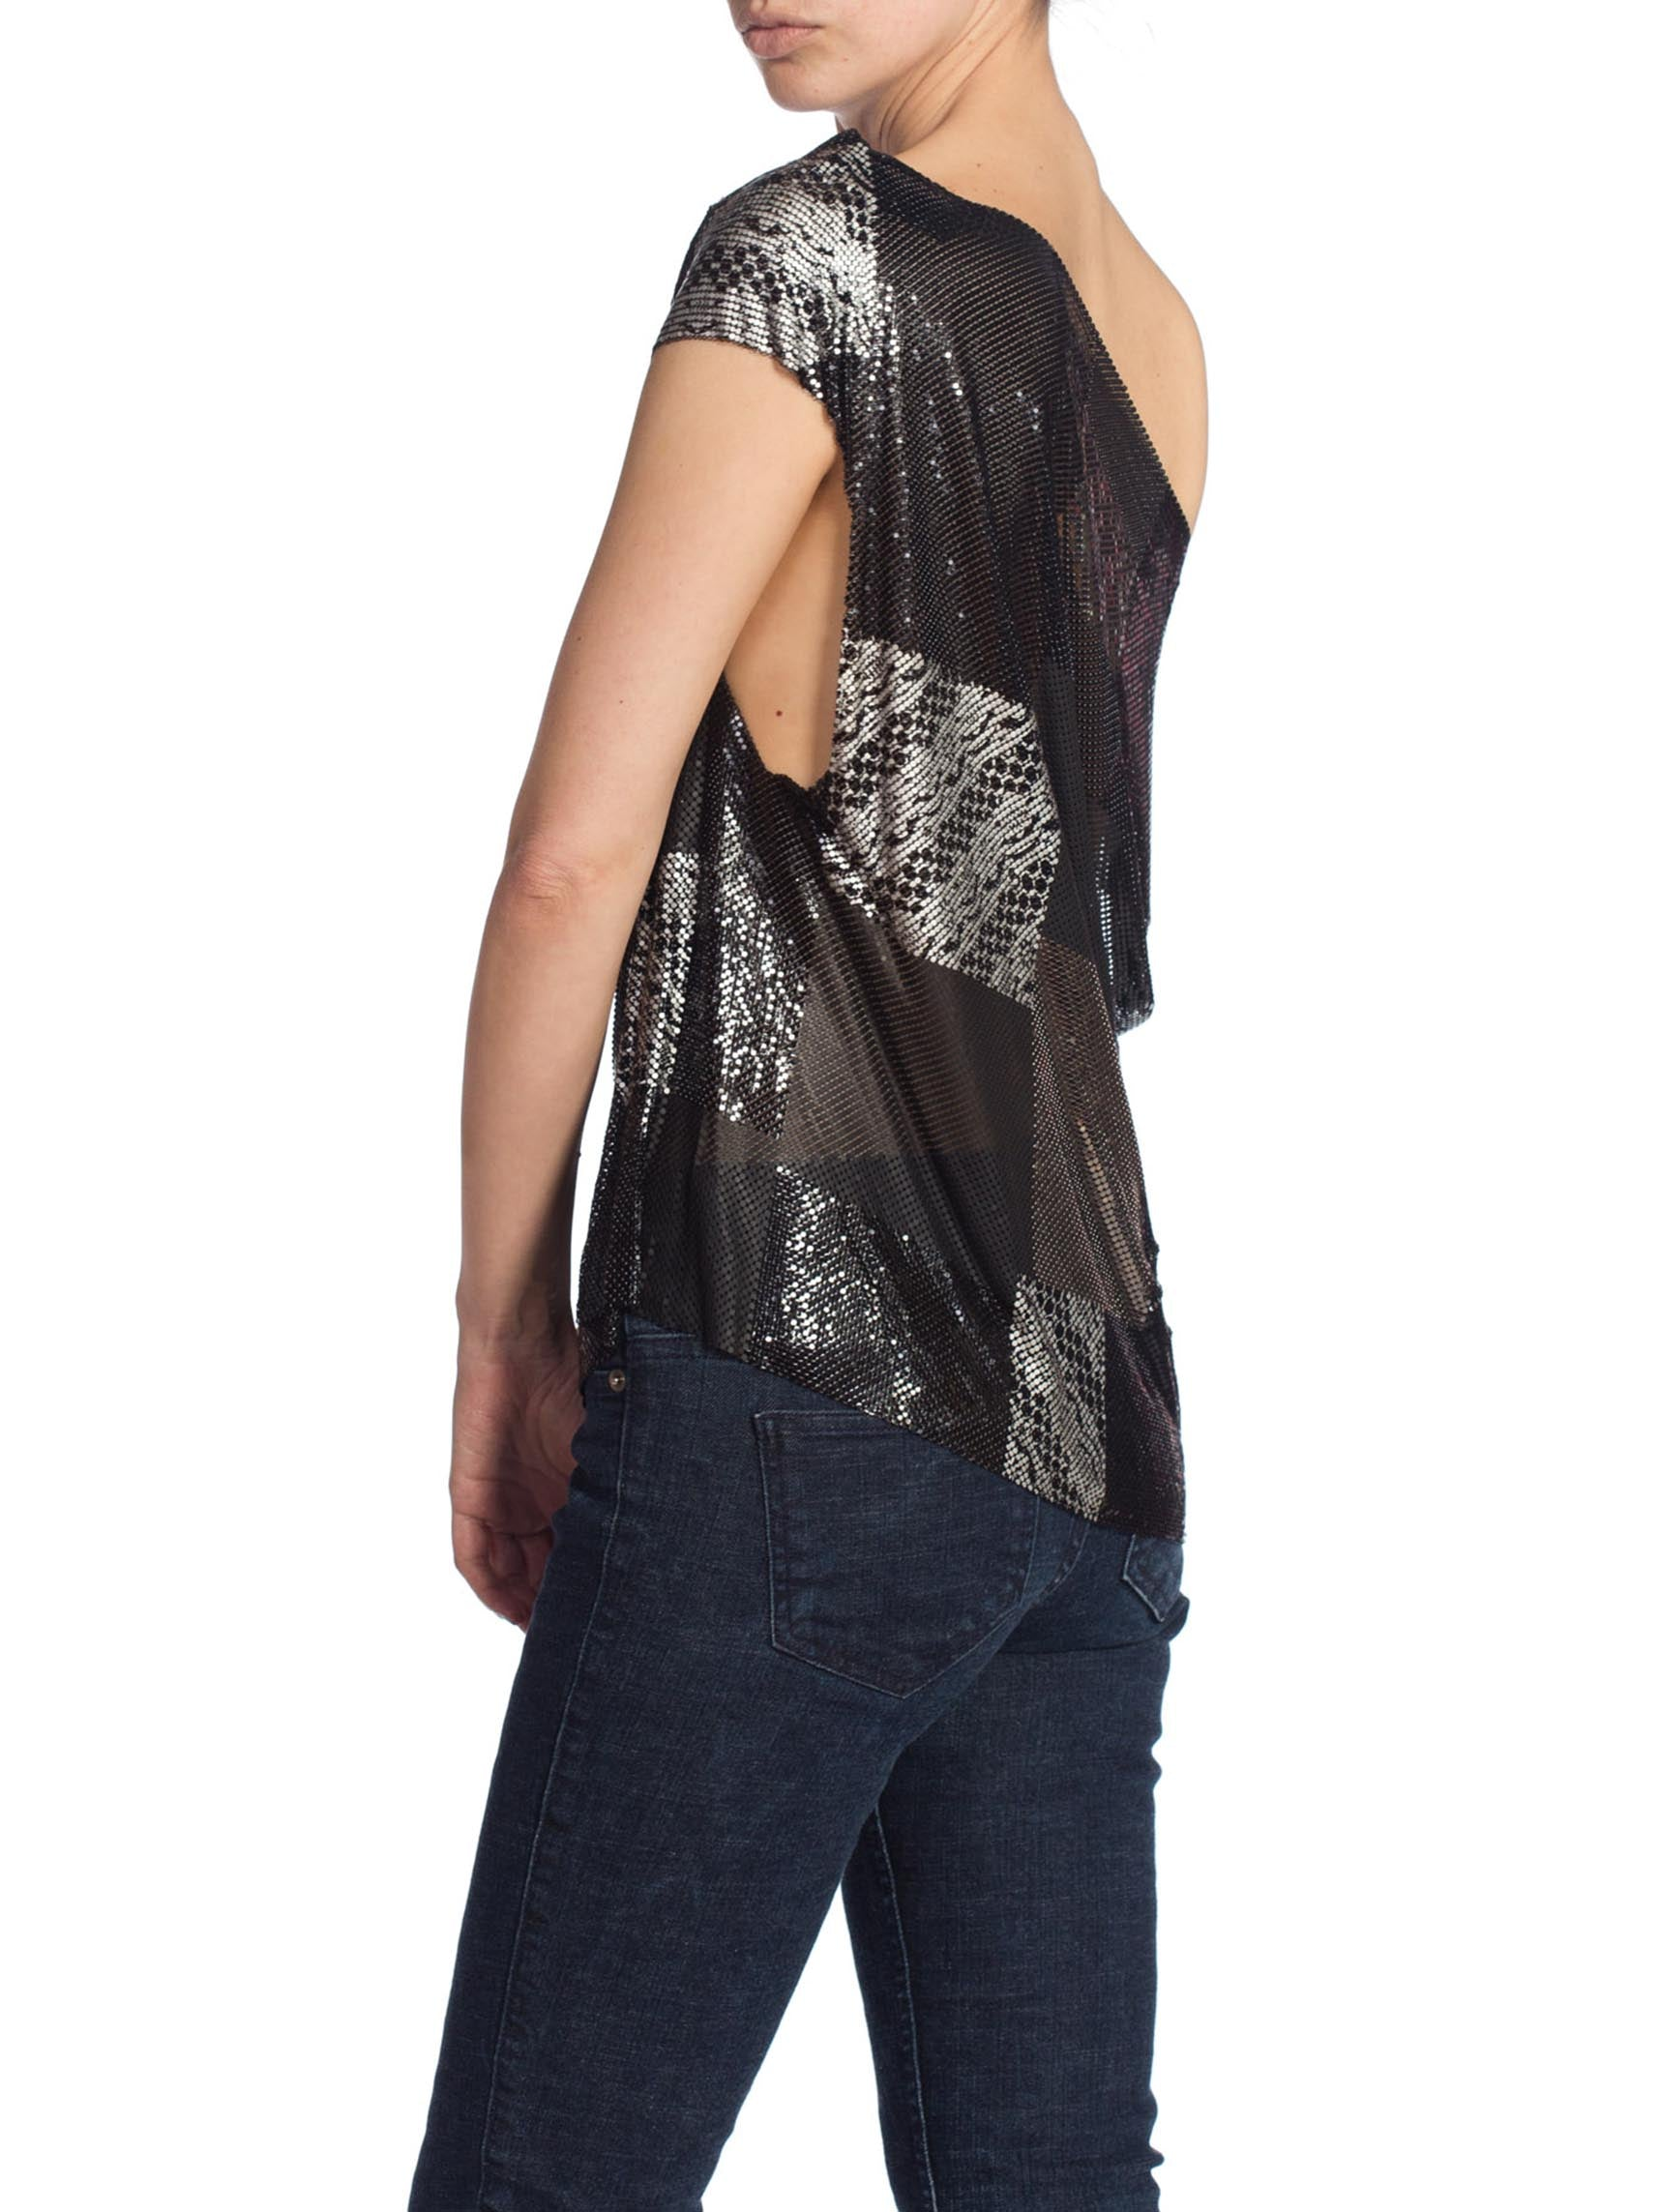 Morphew Collection Patch Work Metal Mesh Top In Black With Crystals